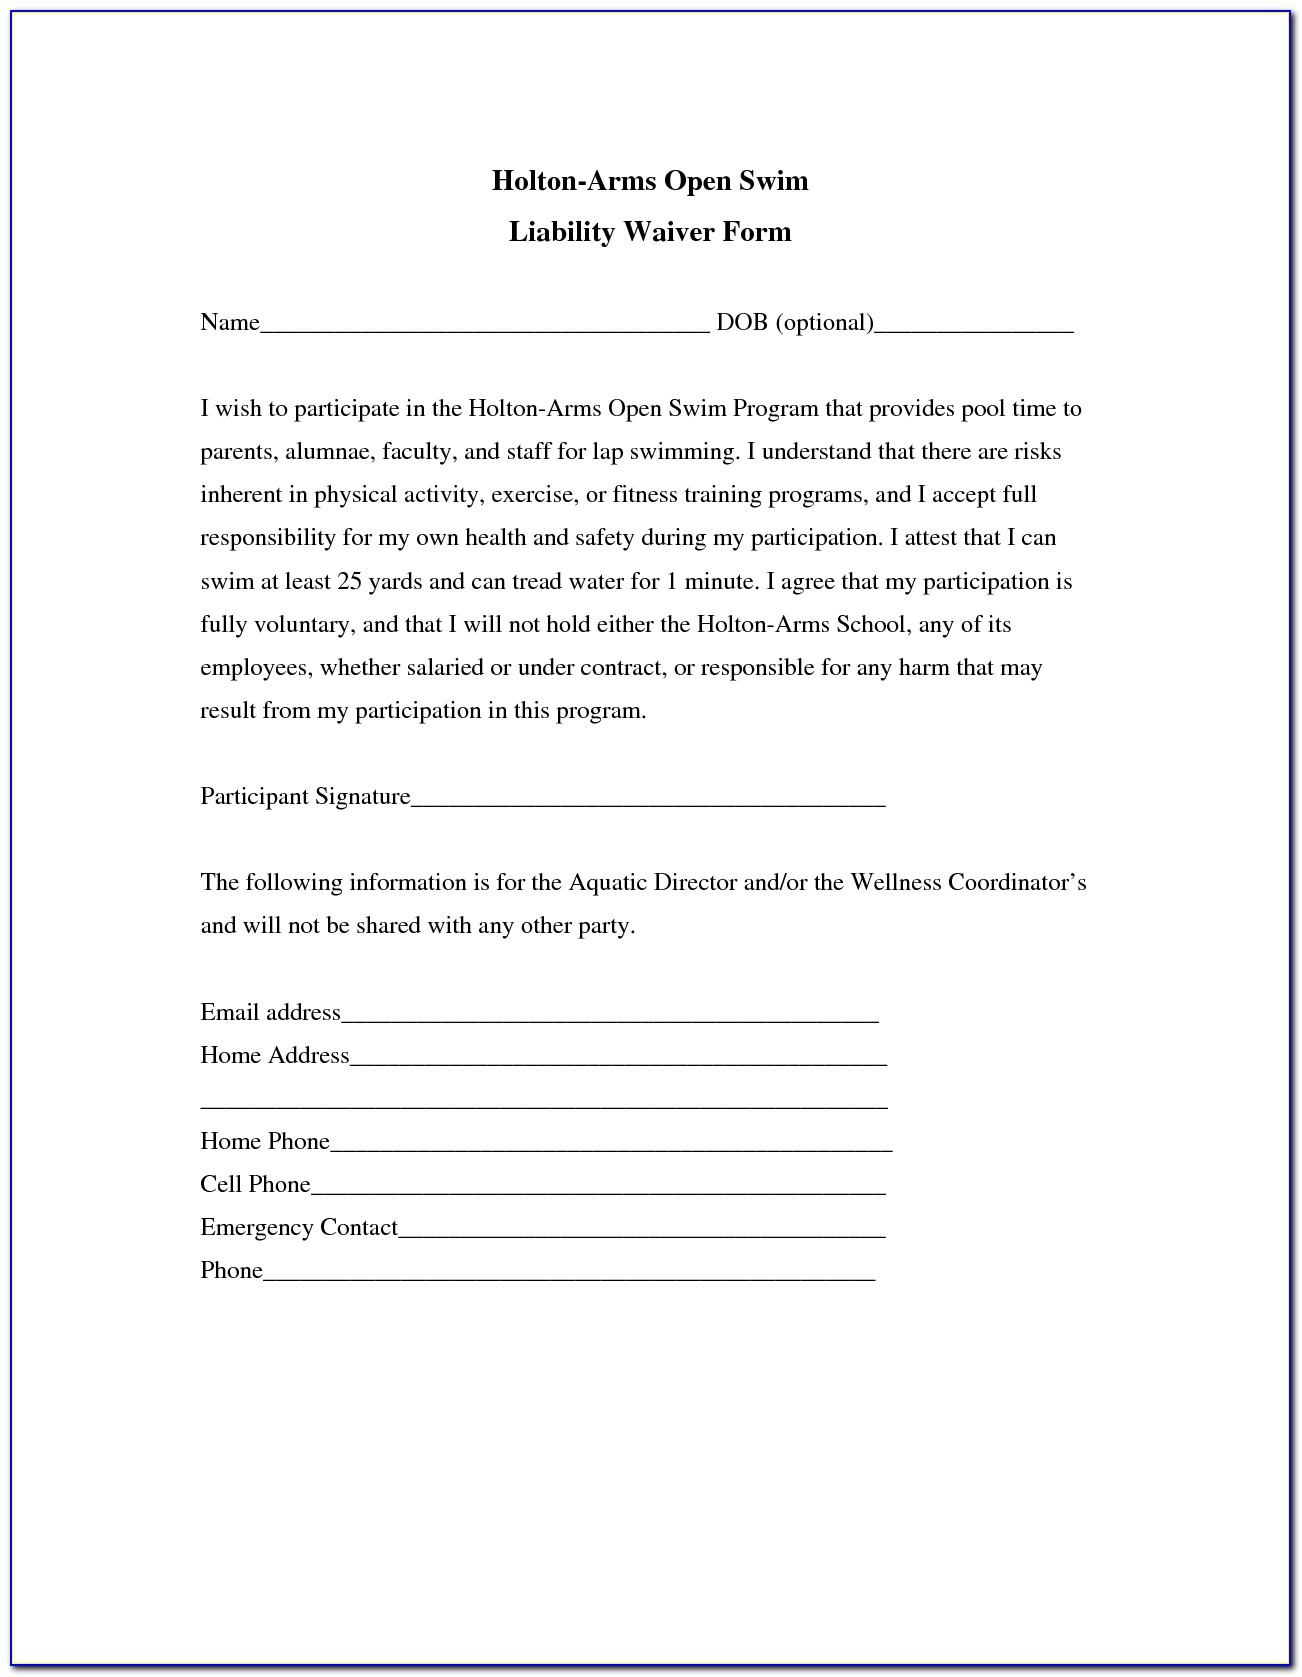 Indemnity Waiver Form Template